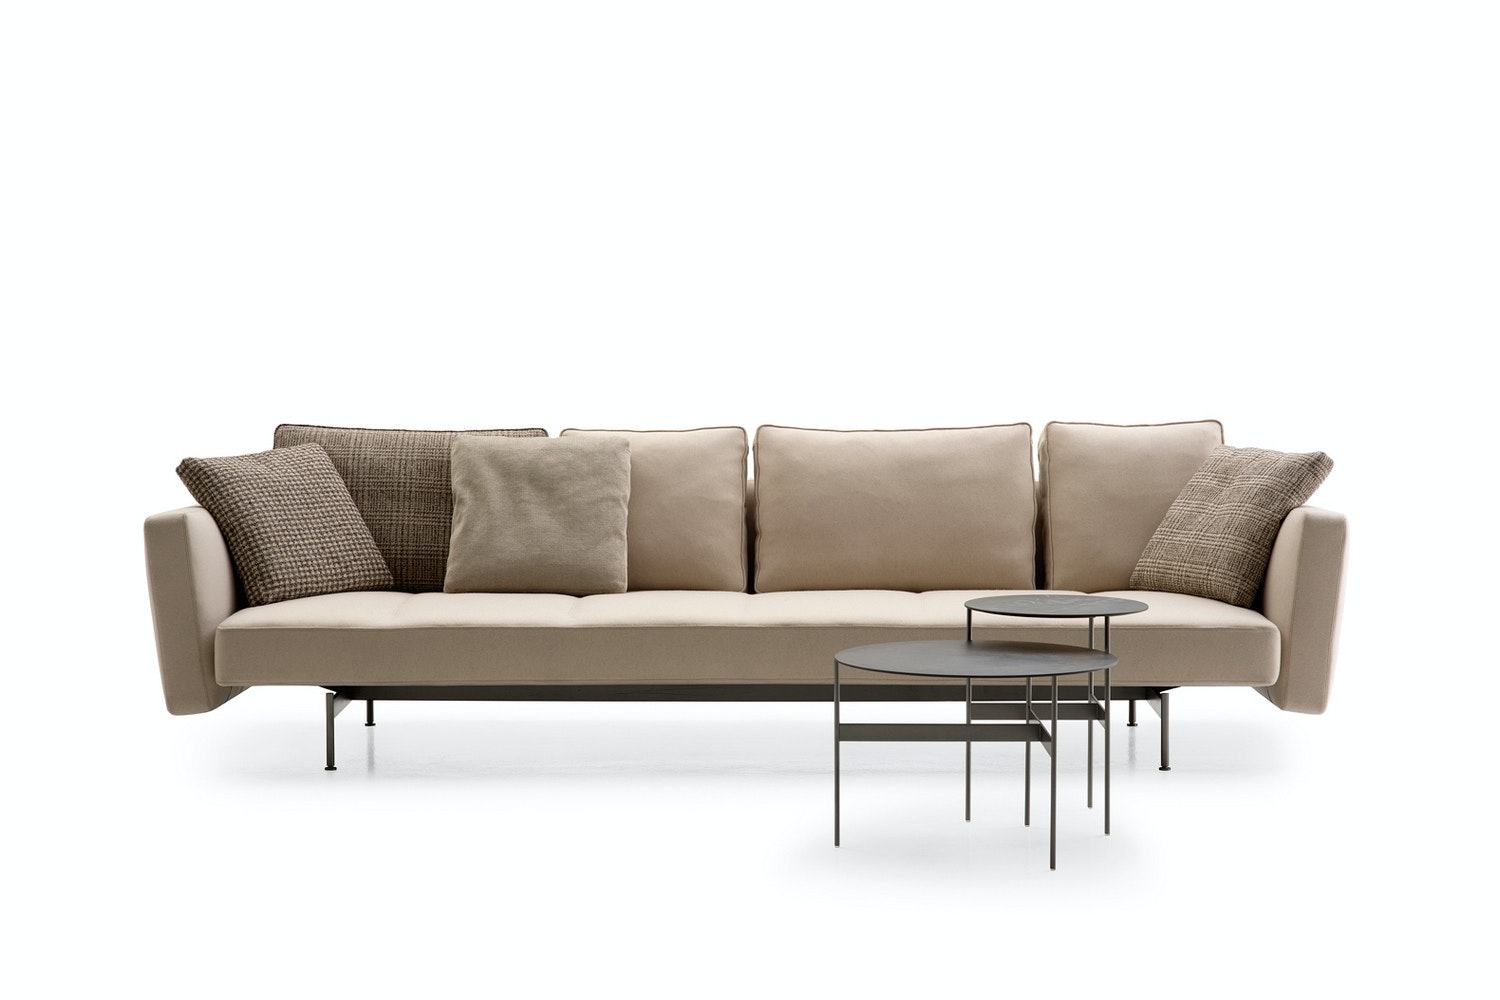 SAKe Sofa by Piero Lissoni for B&B Italia